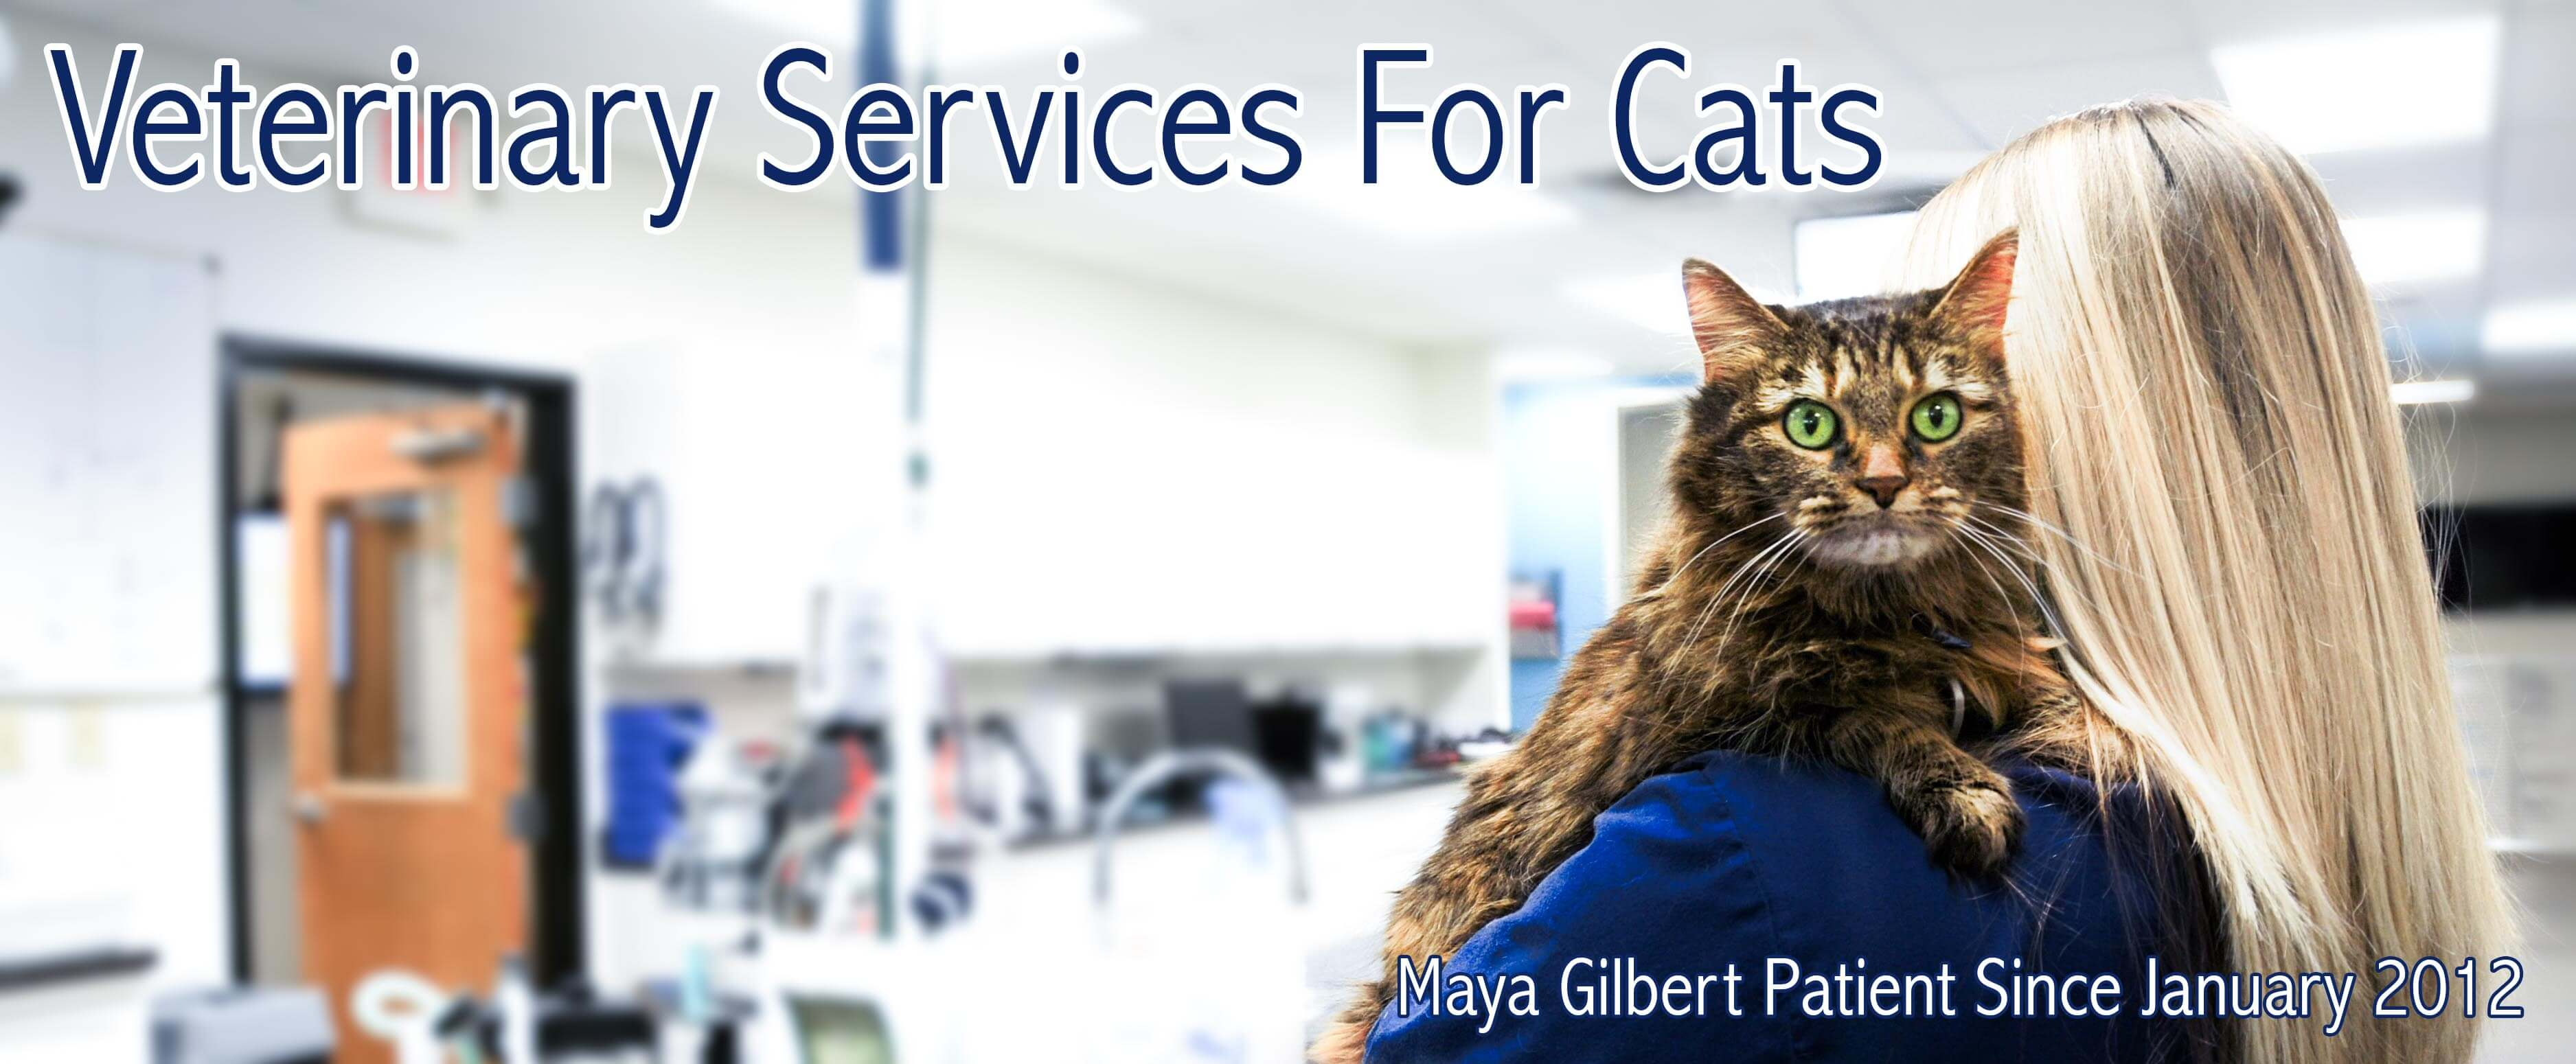 Veterinary Services For Cats